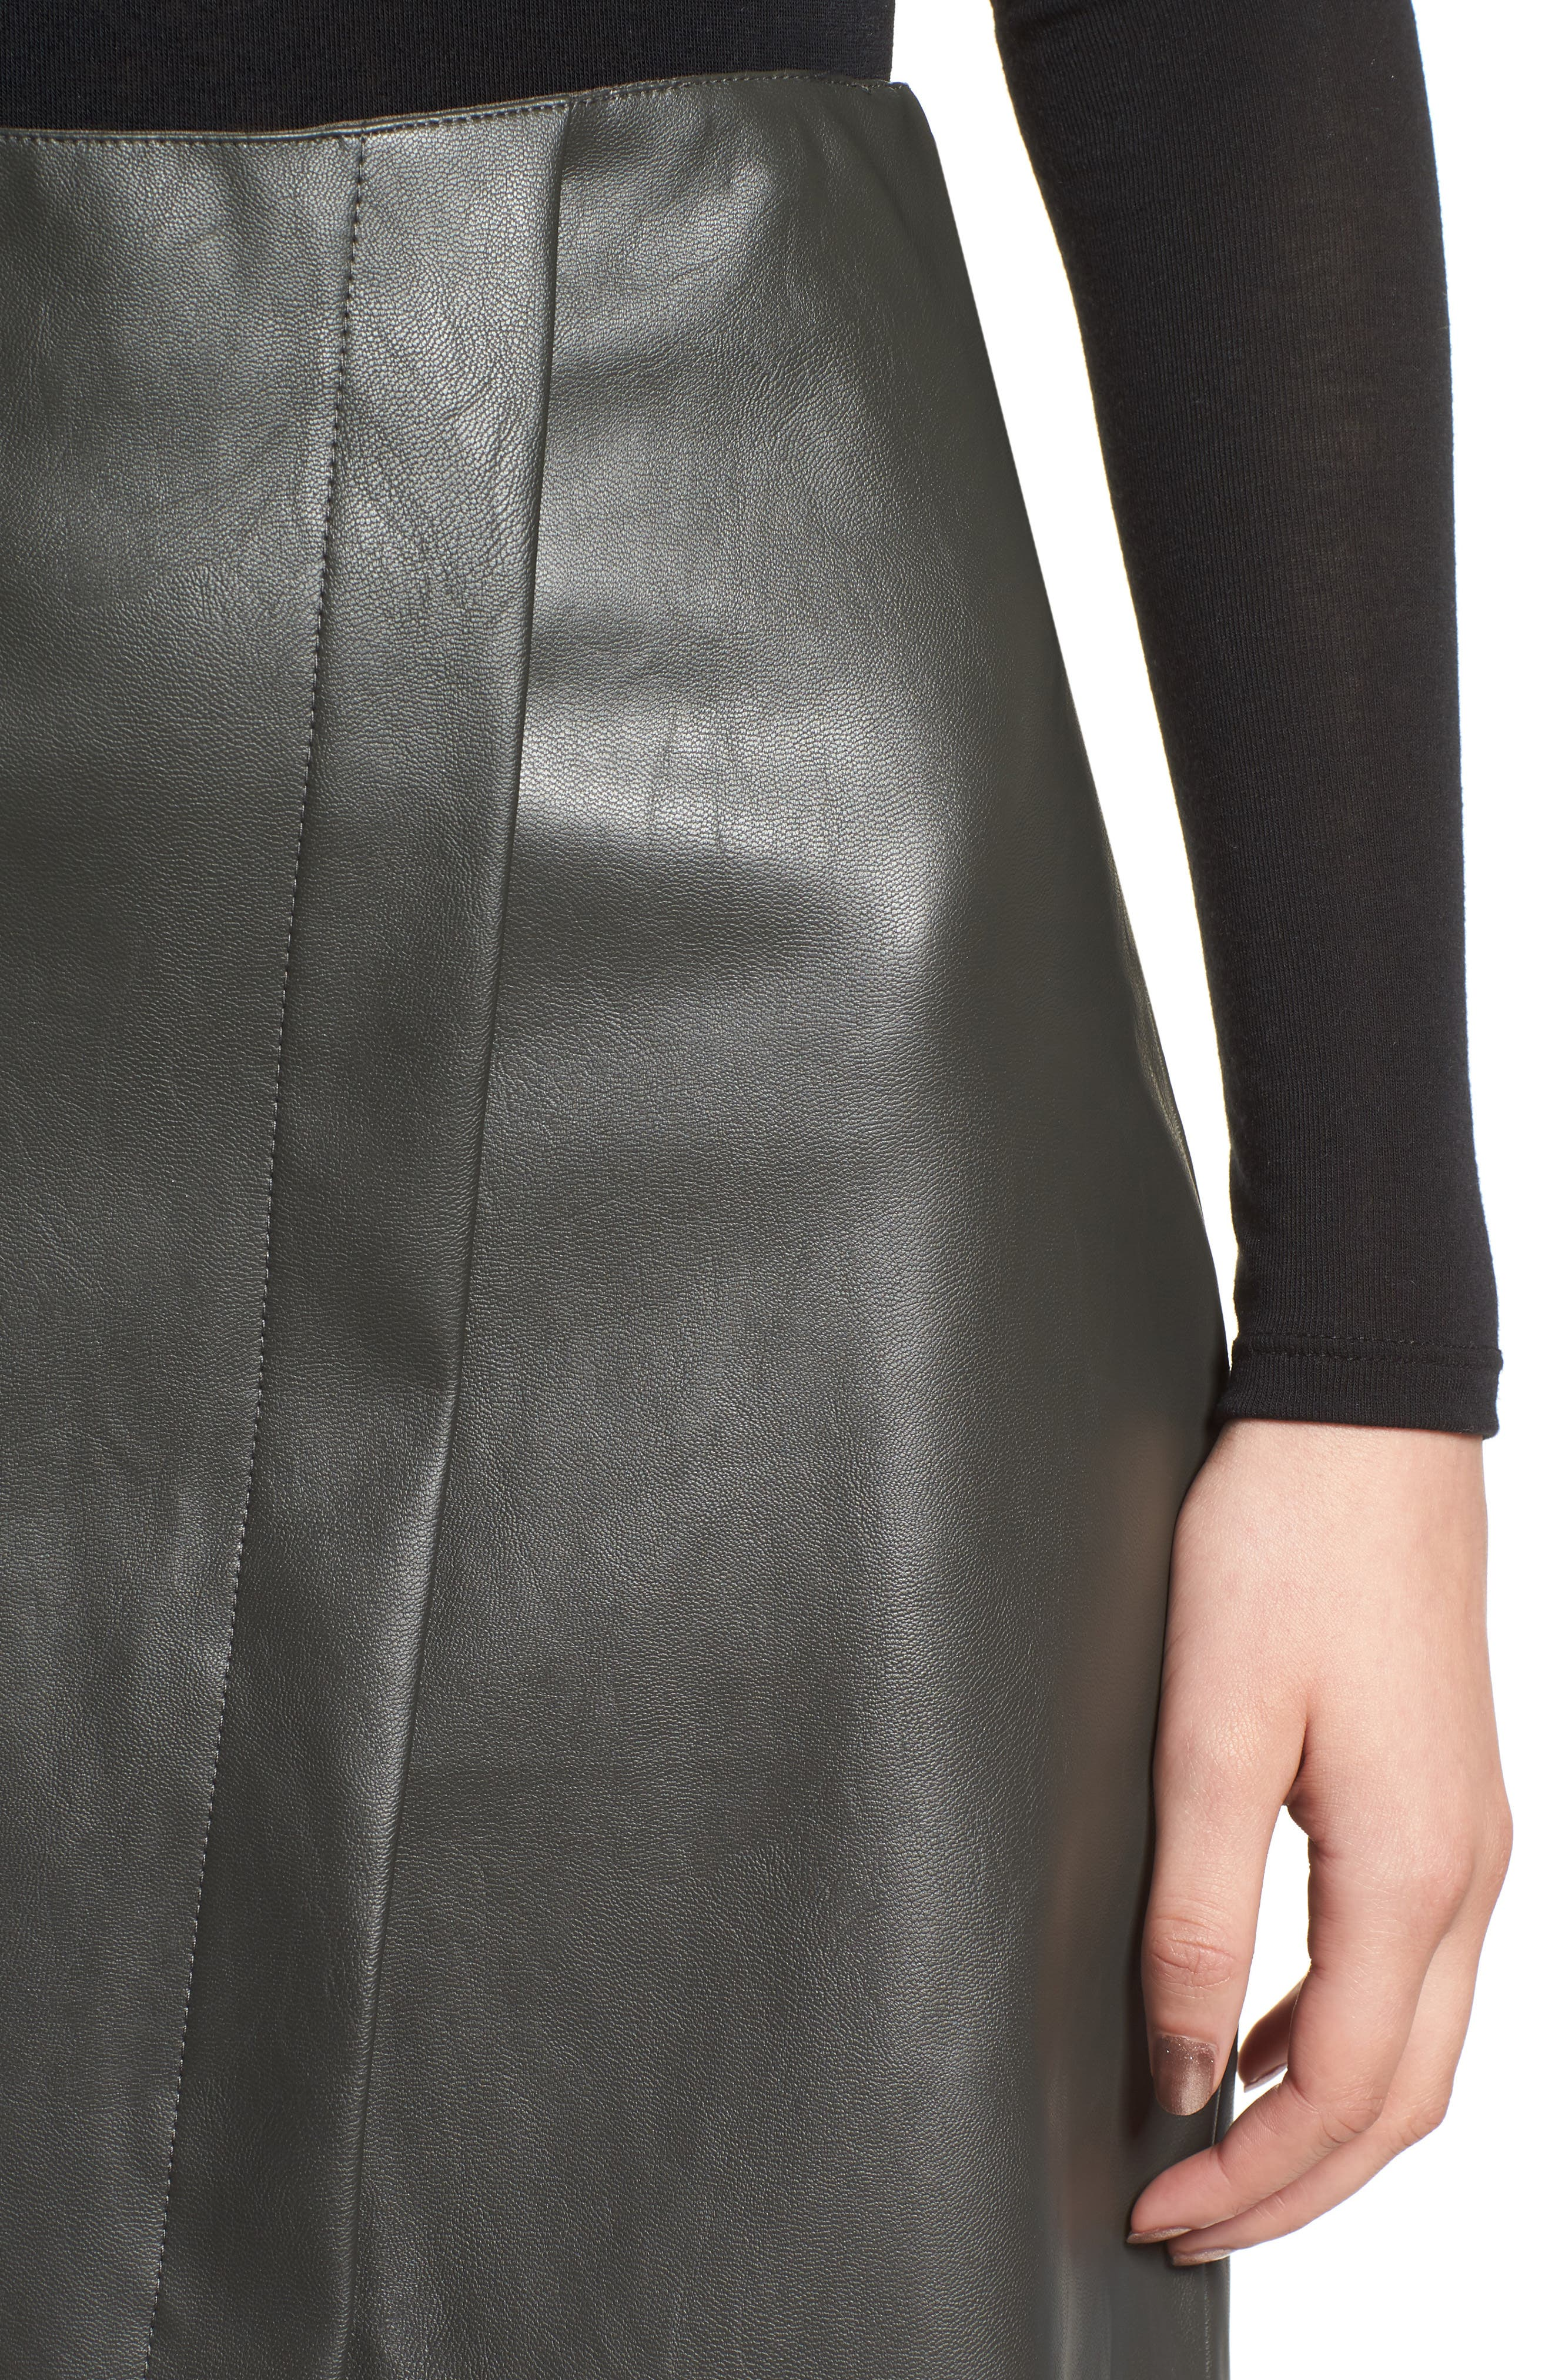 Bishop + Young A-Line Faux Leather Miniskirt,                             Alternate thumbnail 4, color,                             333